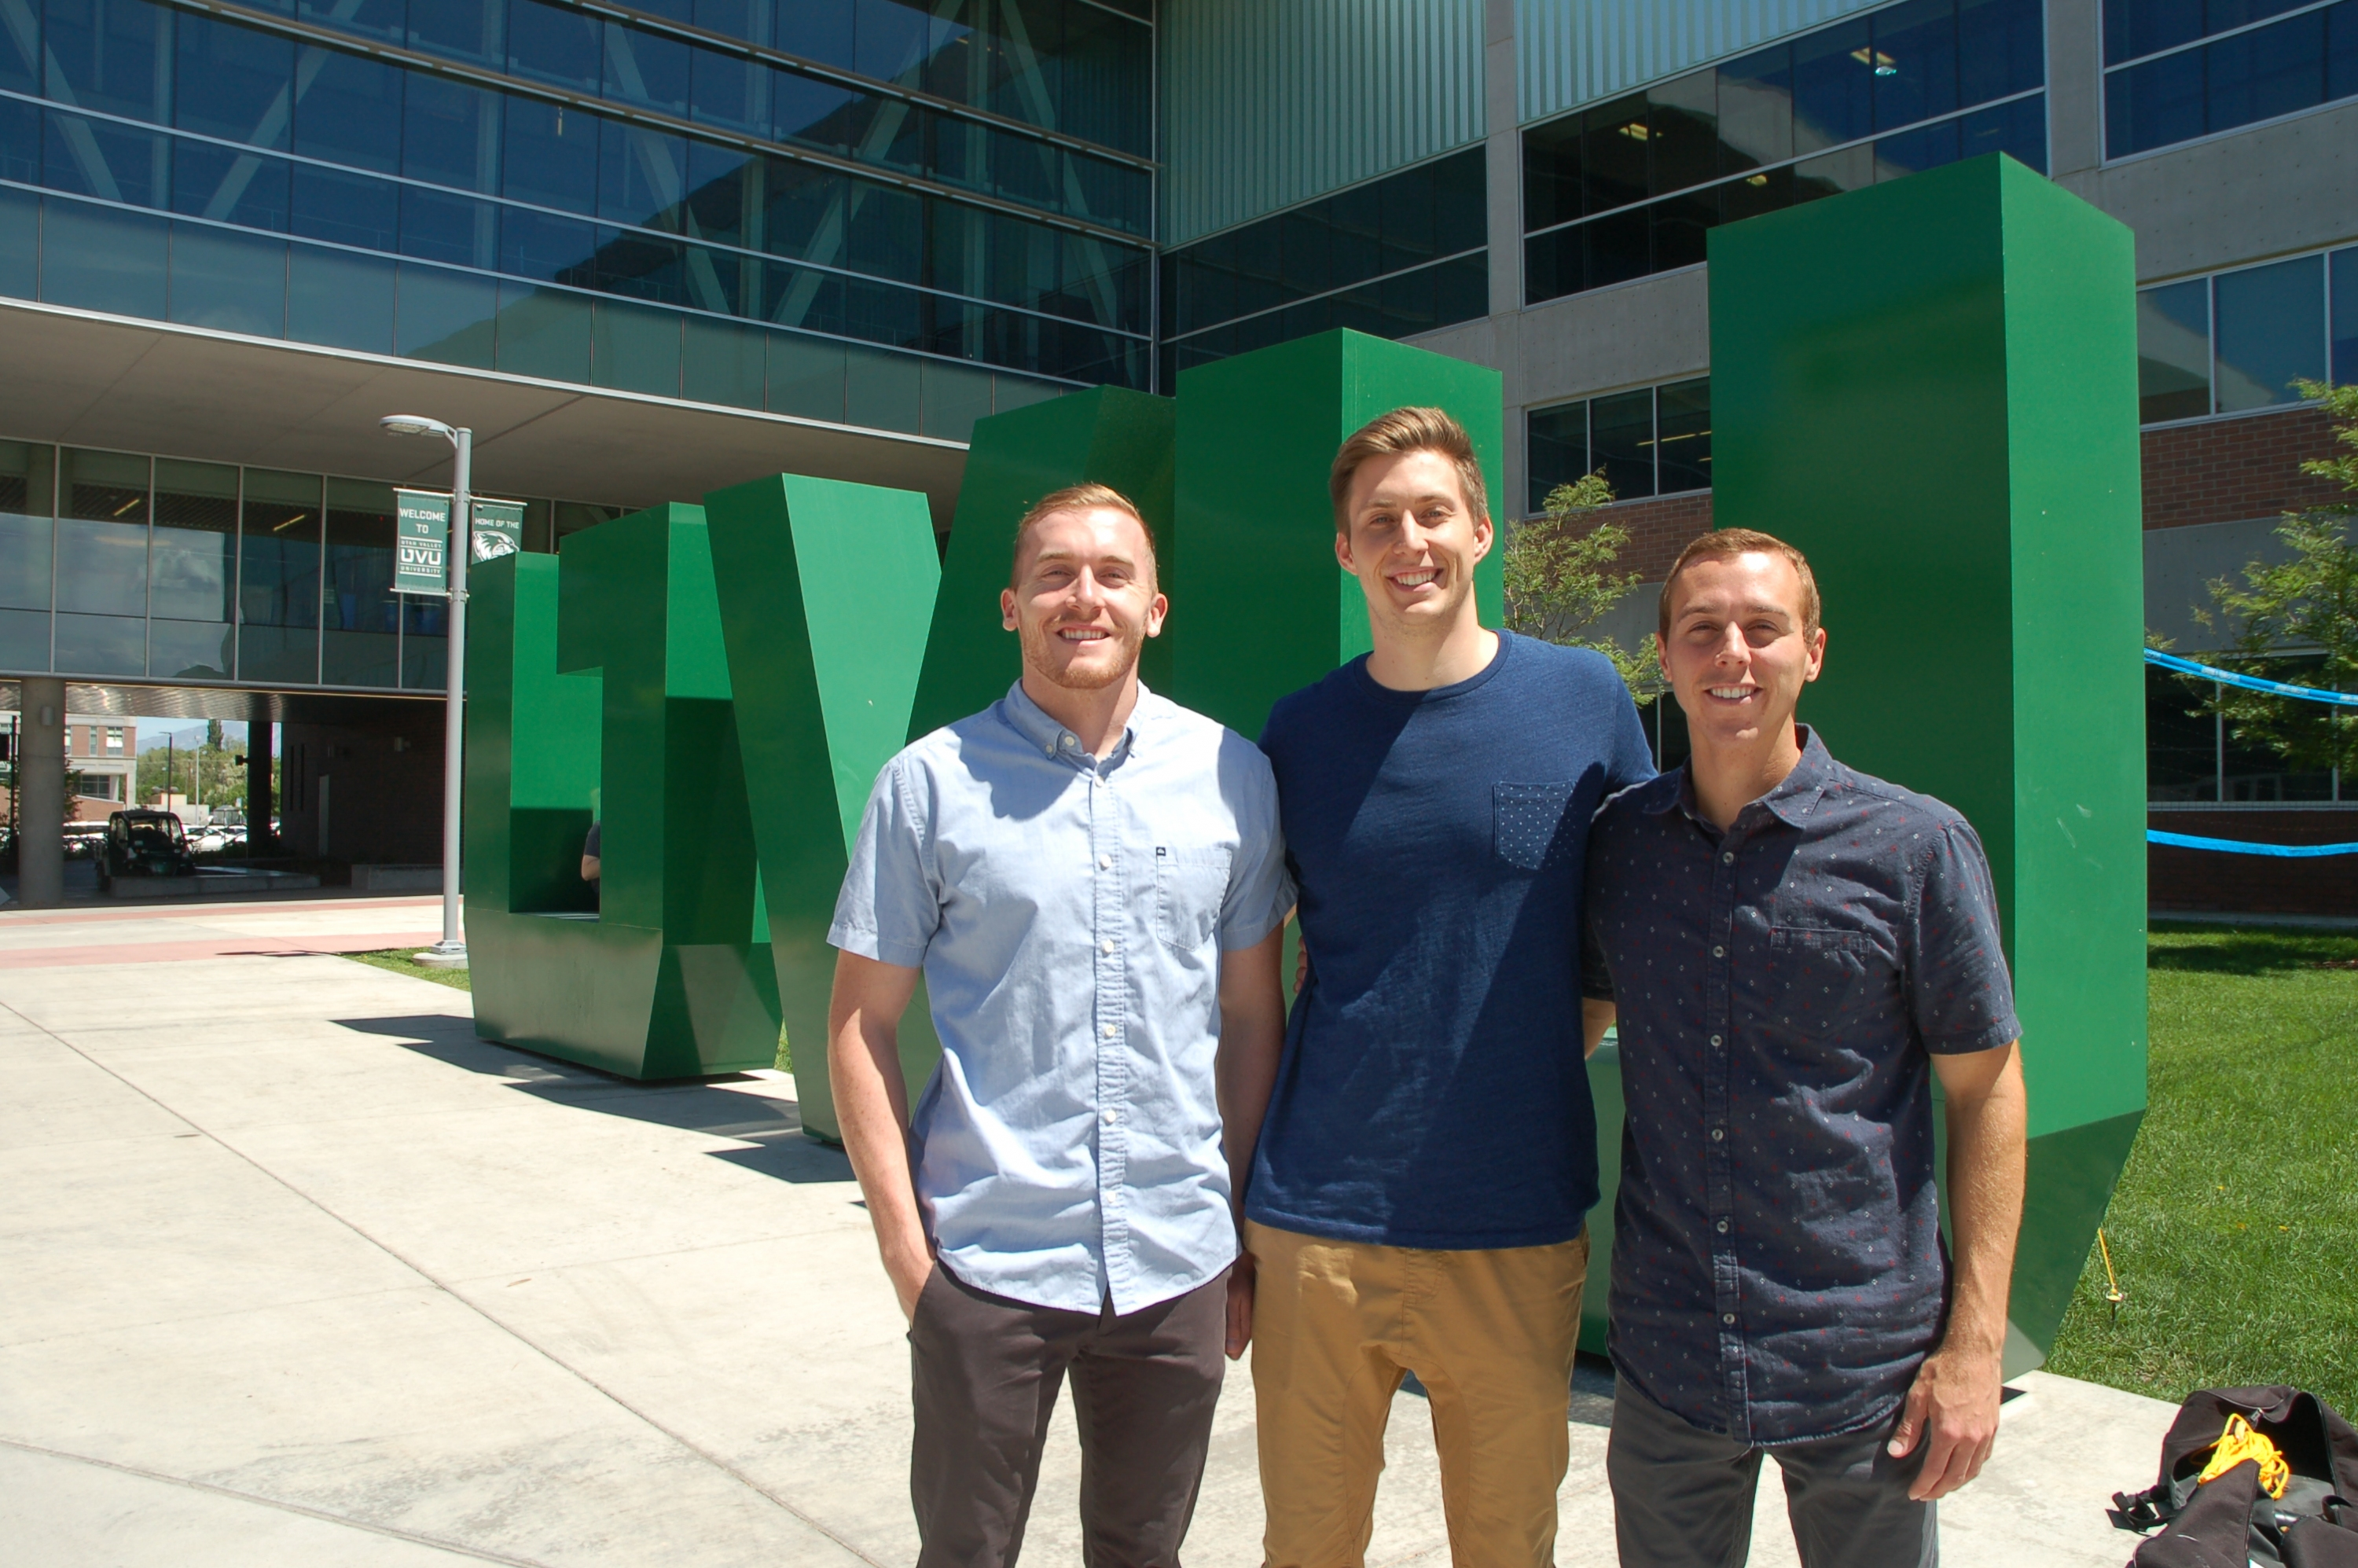 Three UVU students in front of giant green U.V.U. letters